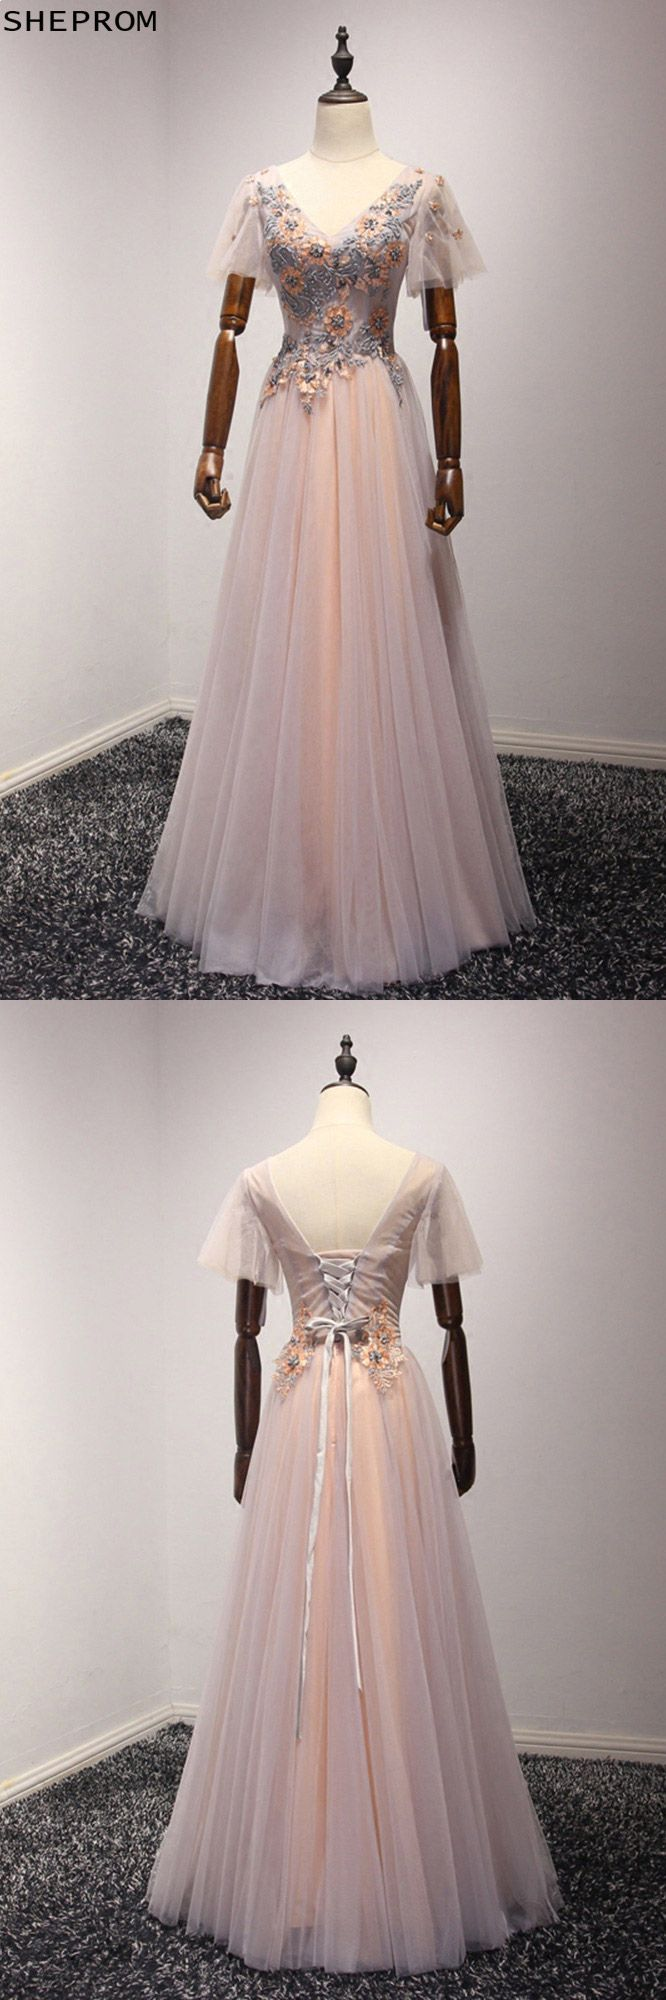 Applique Beading Long Pink Formal Dress With Short Puffy Sleeves